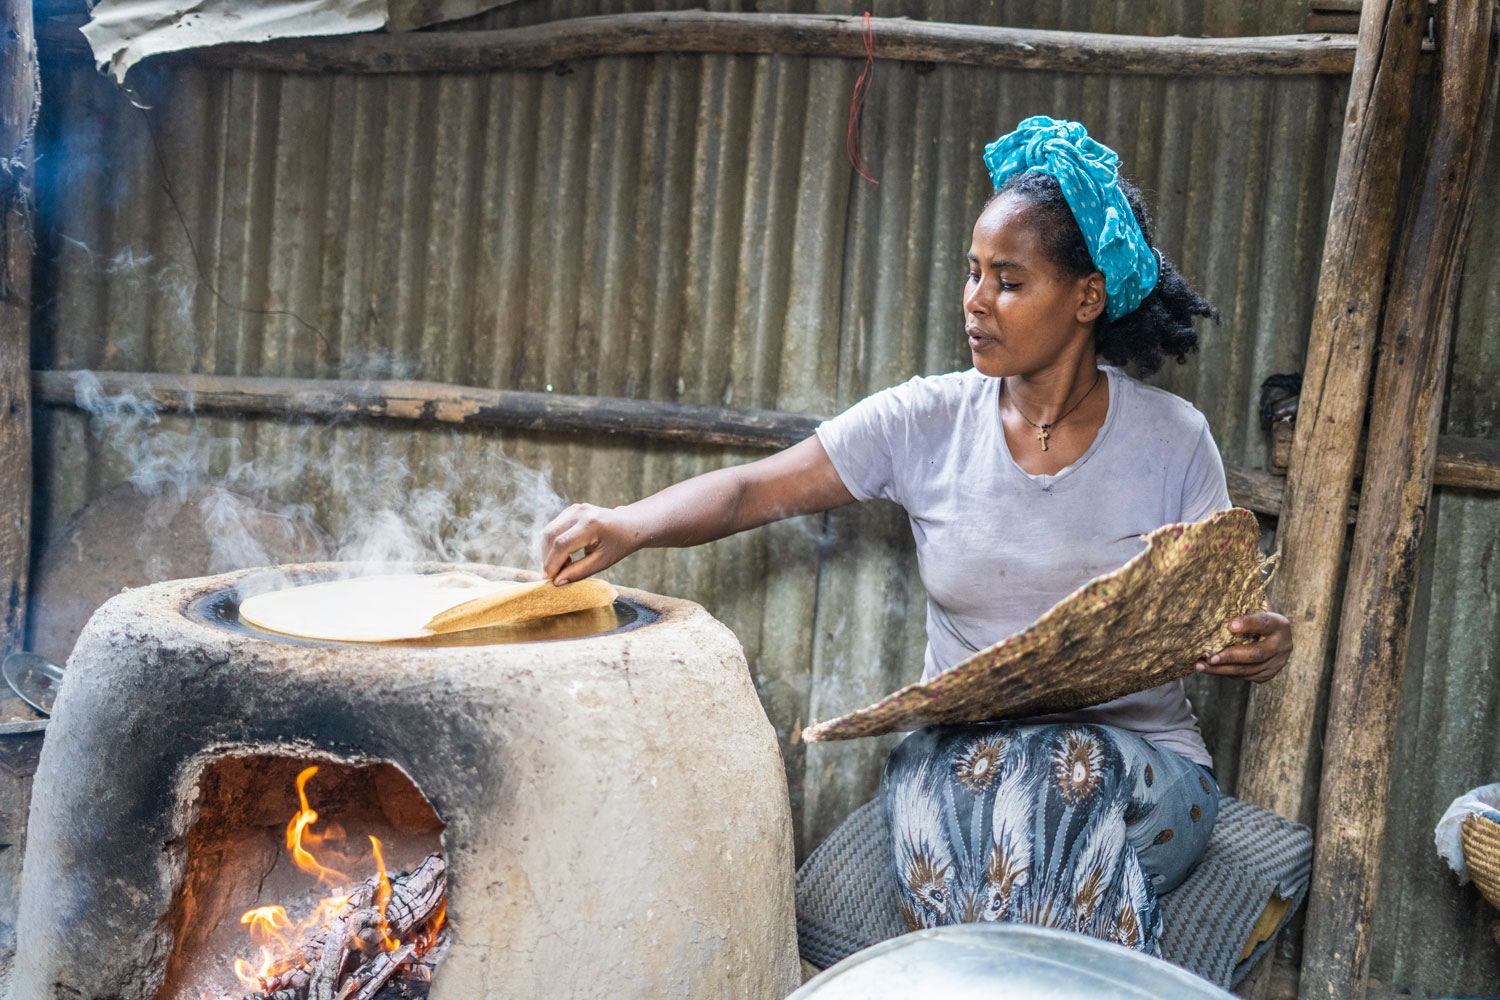 A woman slowly lifting the edges of Ethiopian flatbread.